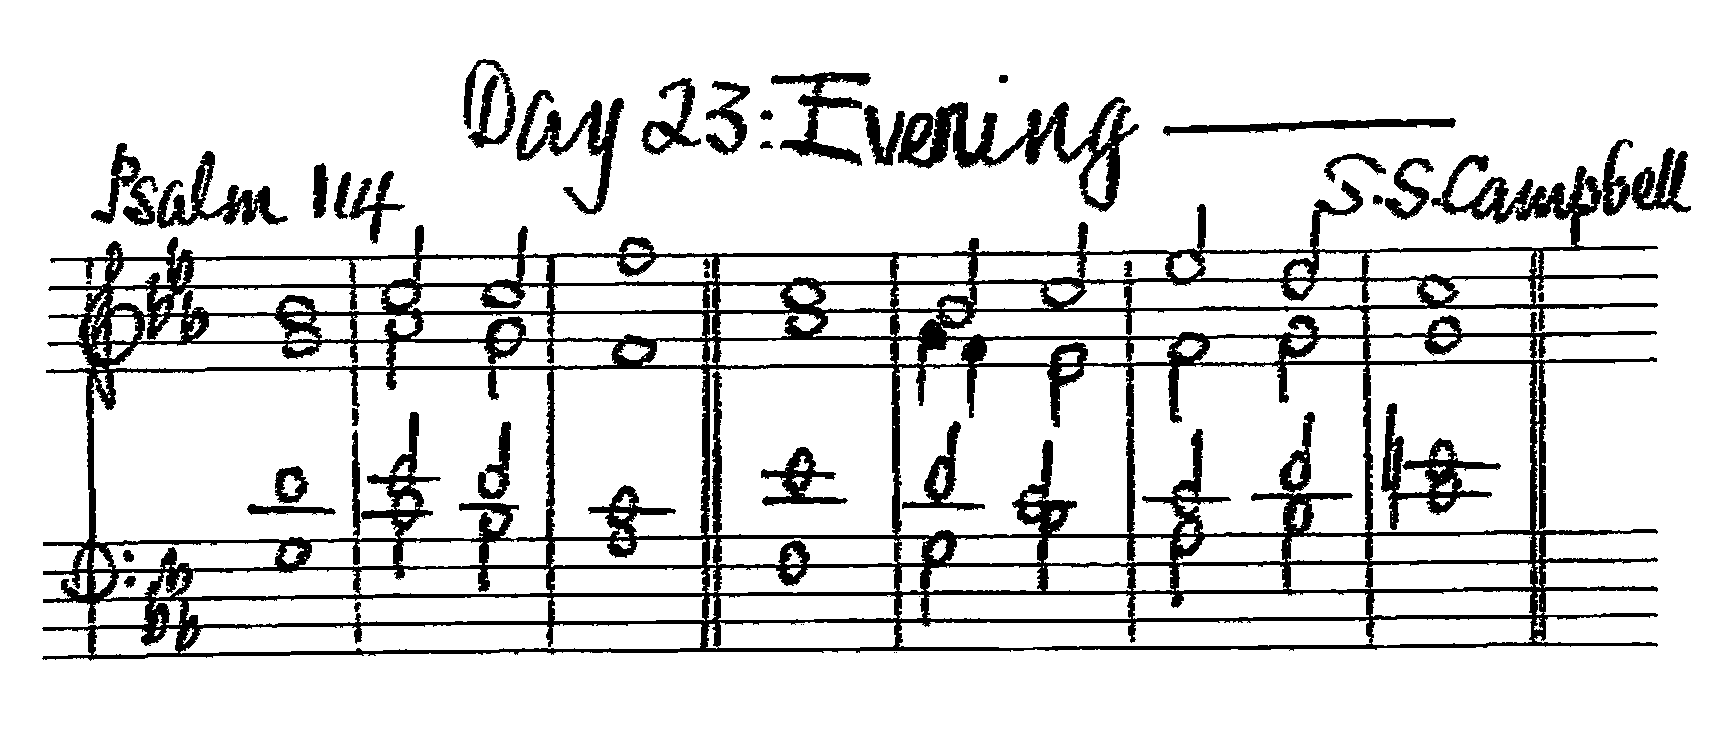 Double chant in C major by Doctor Sidney Scholfield Campbell set for Psalm 114 of the Twenty-Third Evening